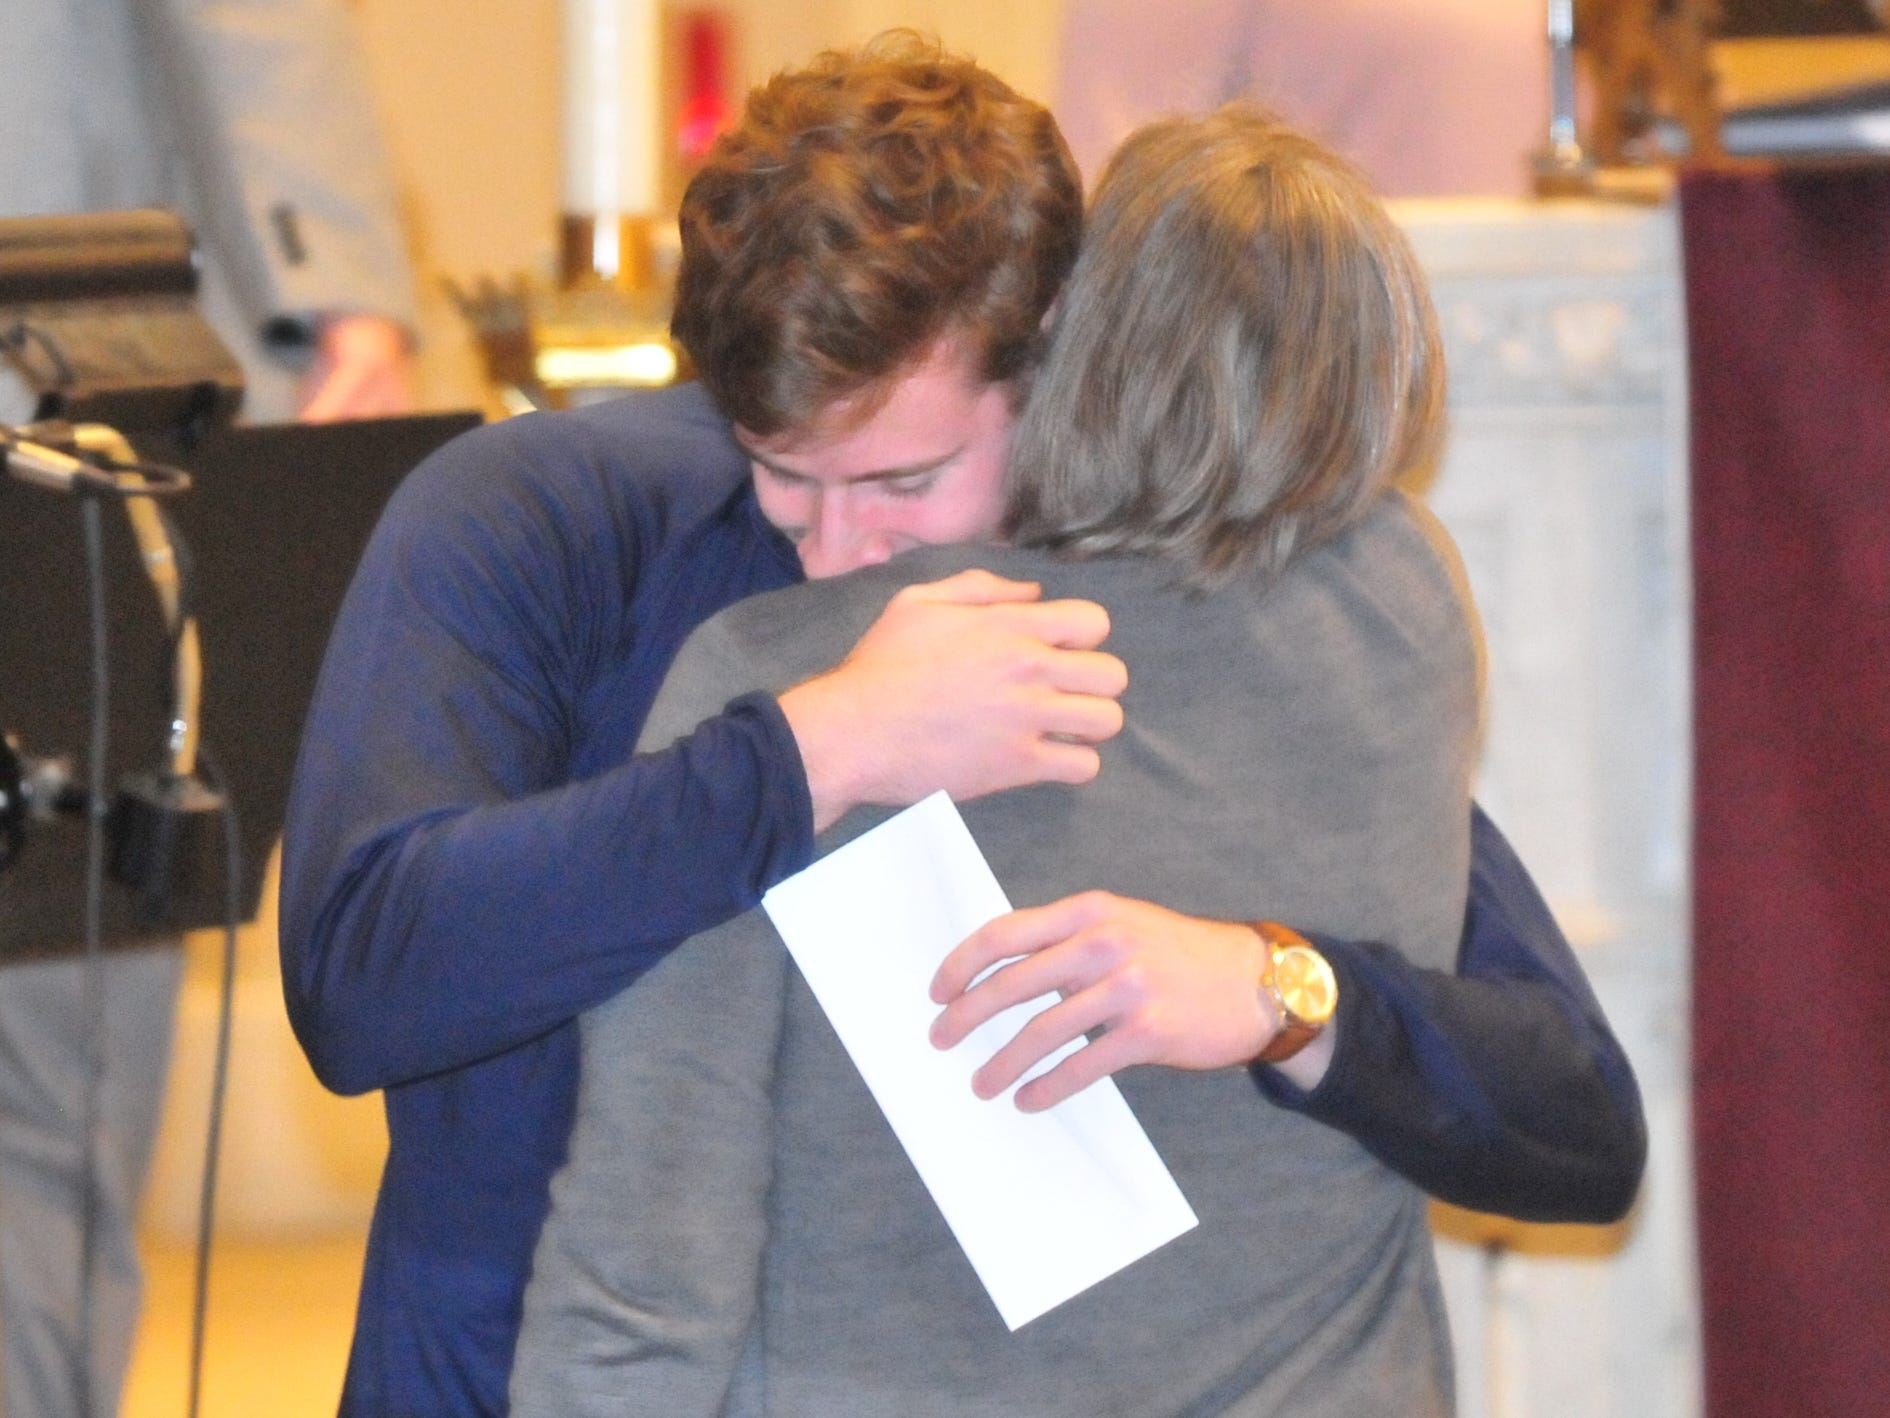 Seton Catholic senior Joseph Lahmann, hugs his mother Margaret Rees Lahmann after finding out he won the Lilly Endowment Community Scholarship after morning mass at St. Andrew's Catholic Church in Richmond Tuesday, Dec. 11, 2018.